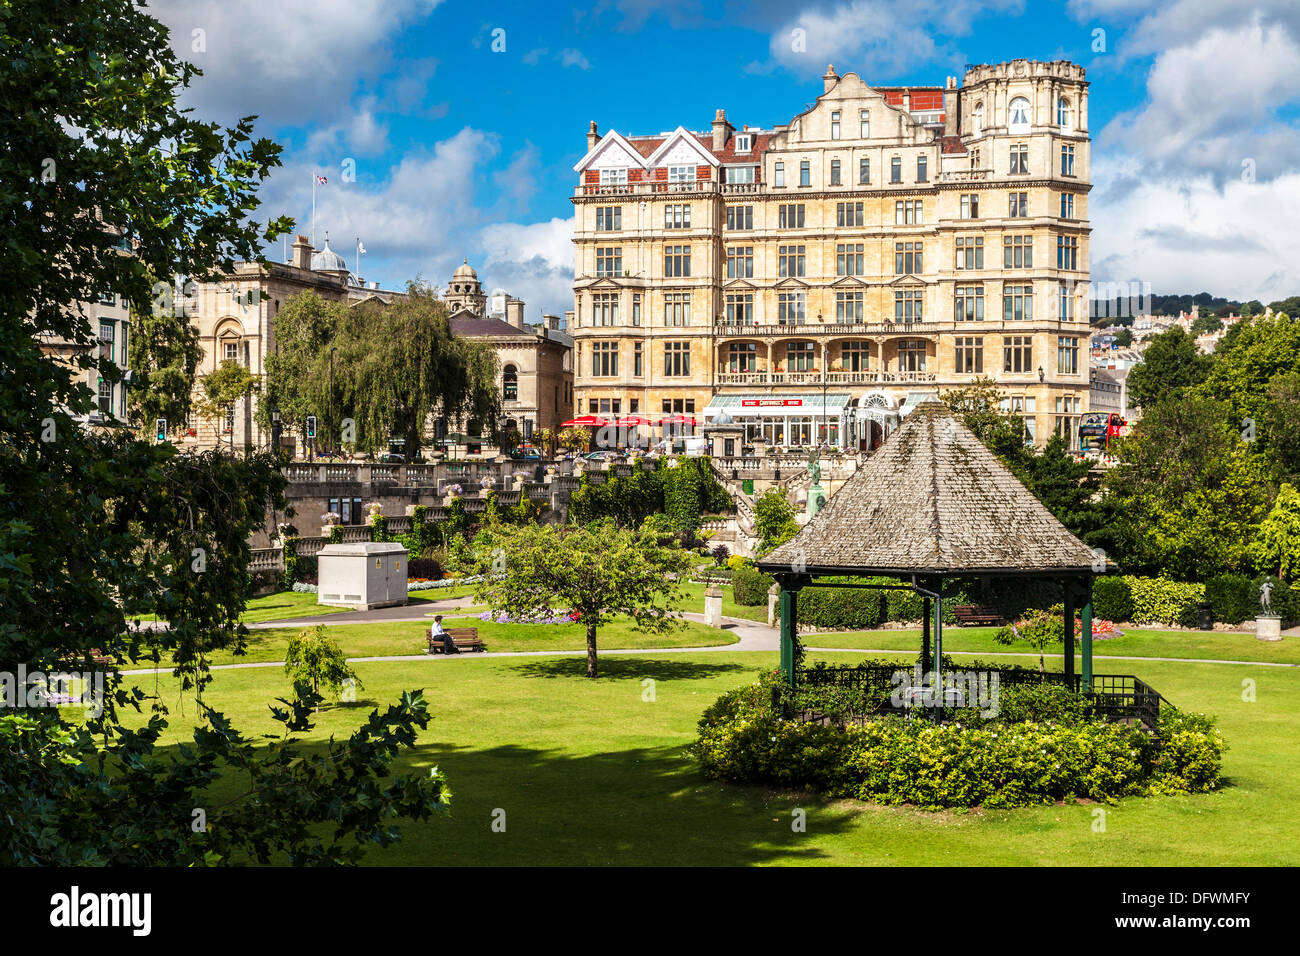 View over the Parade Gardens towards the former Empire Hotel in Bath, Somerset, UK. - Stock Image